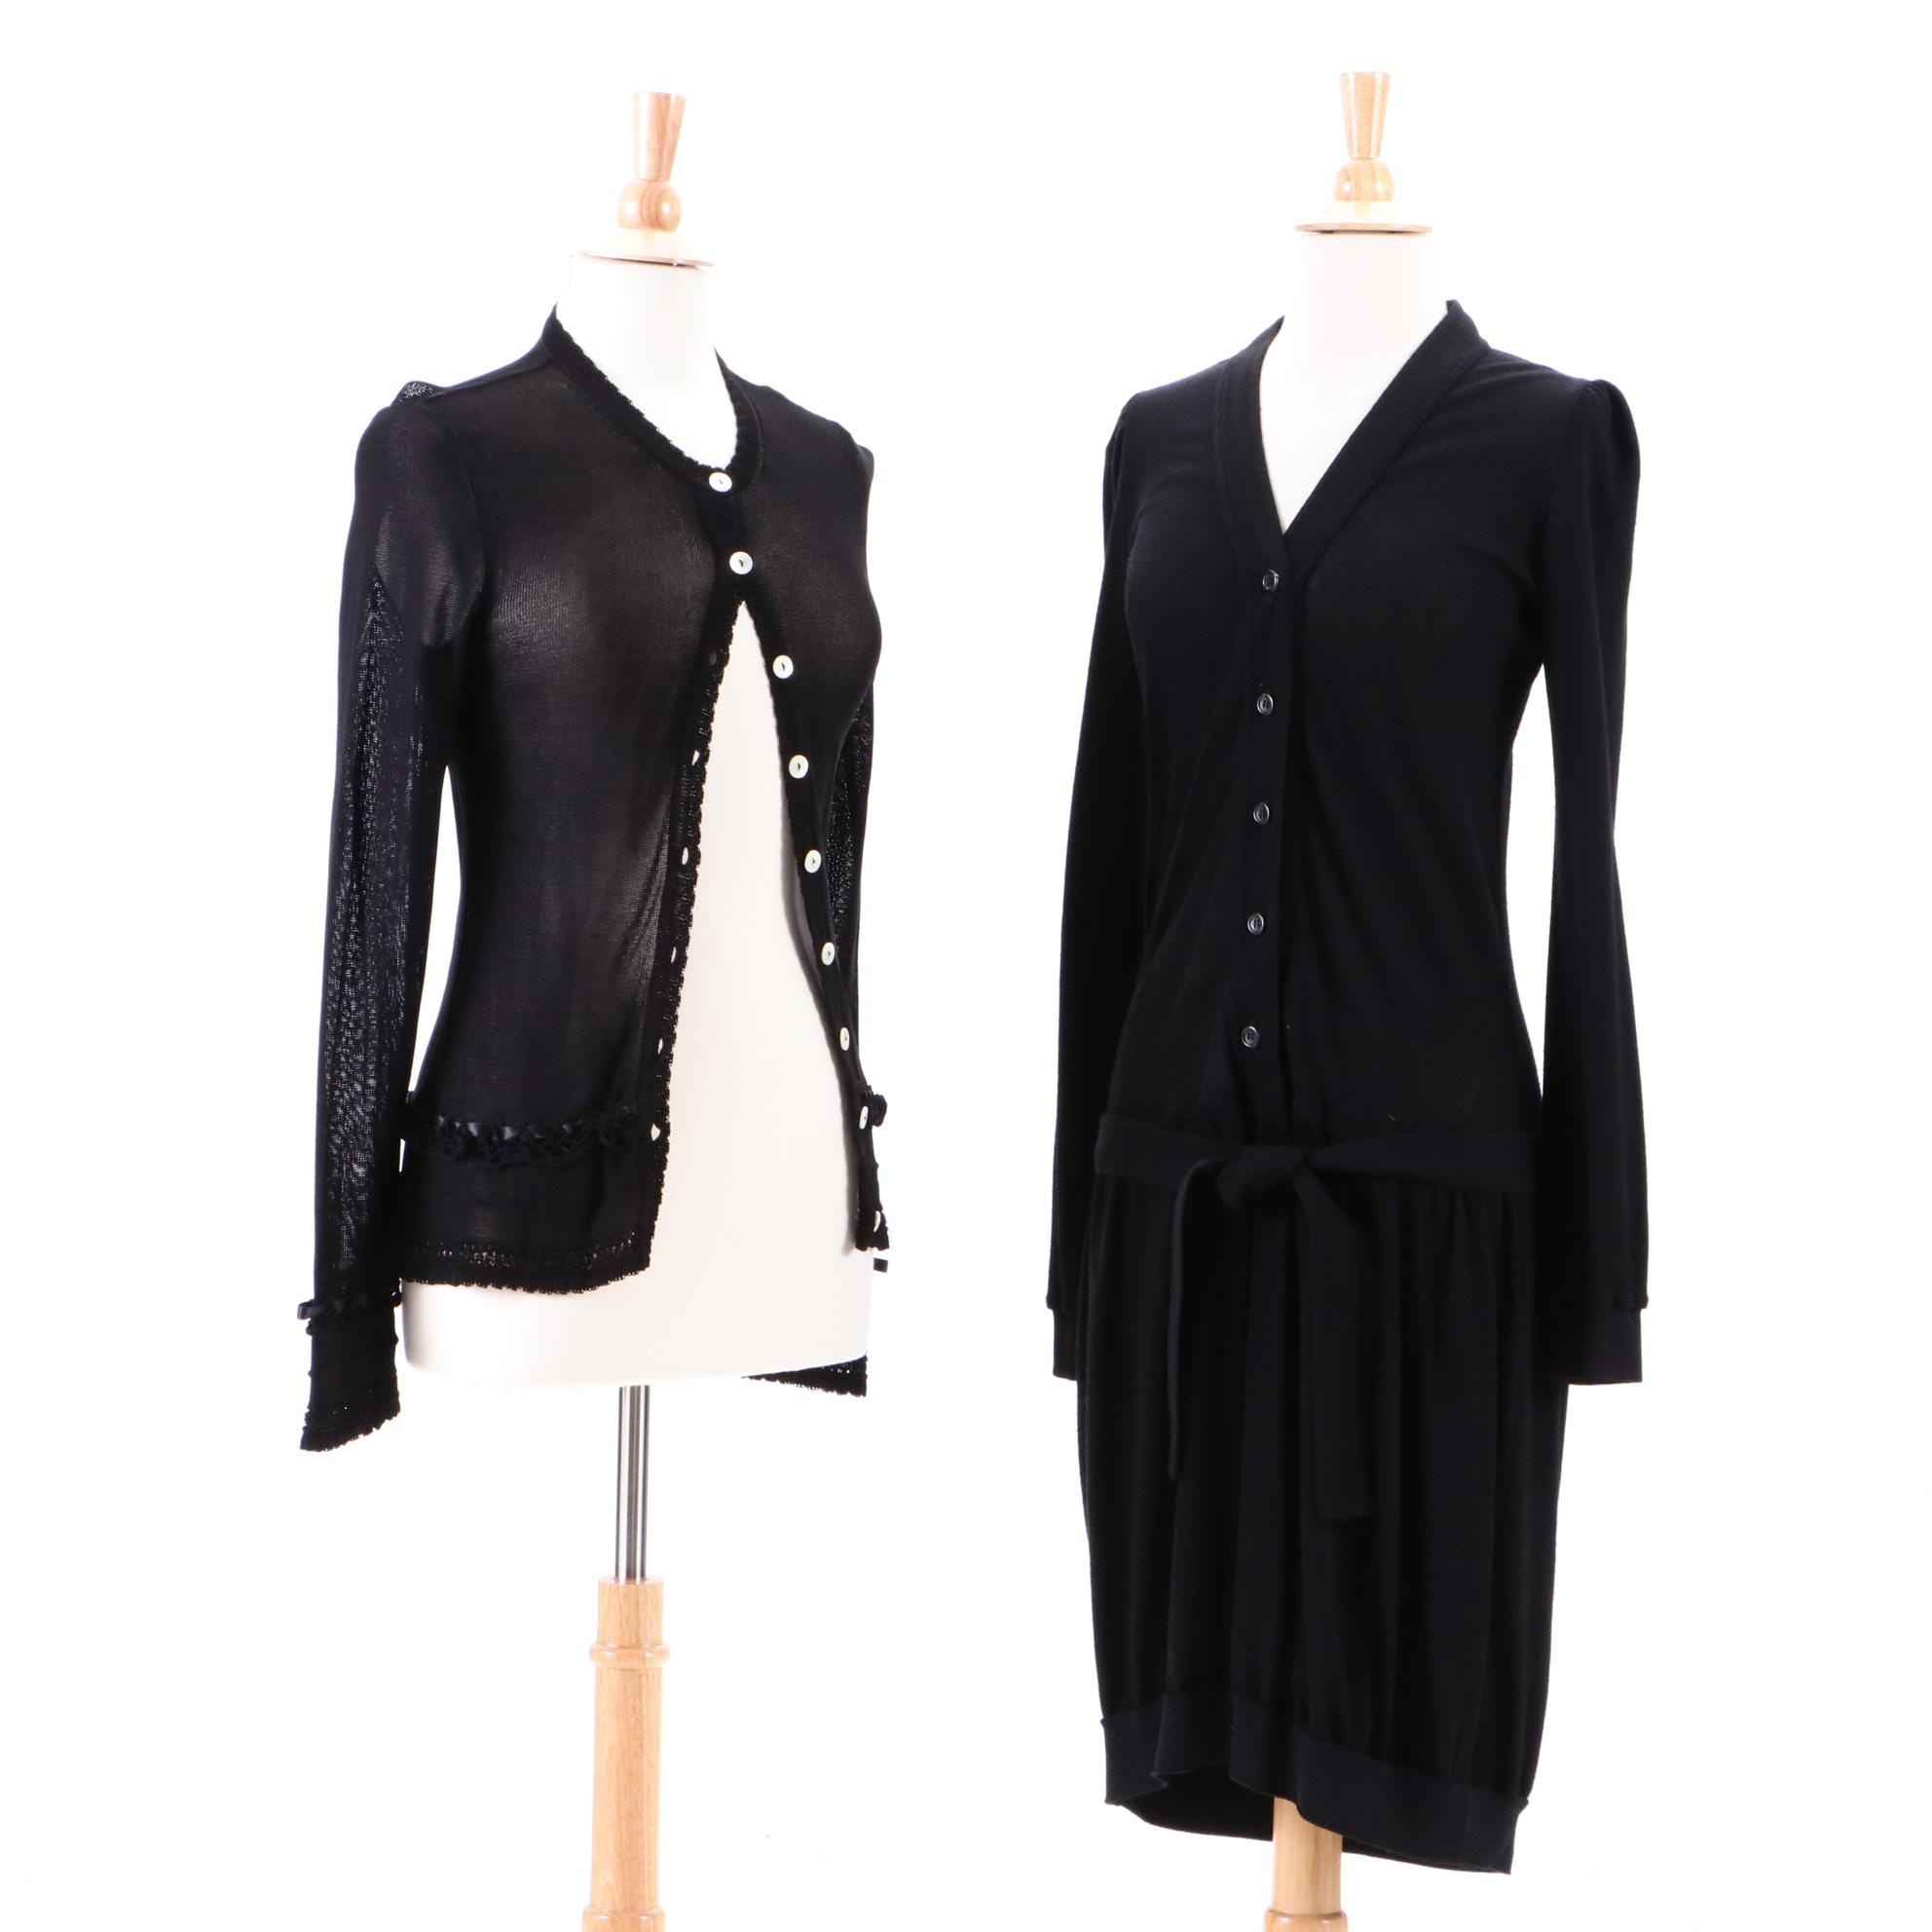 Dolce & Gabbana and Yves Saint Laurent Black Dress and Sheer Cardigan